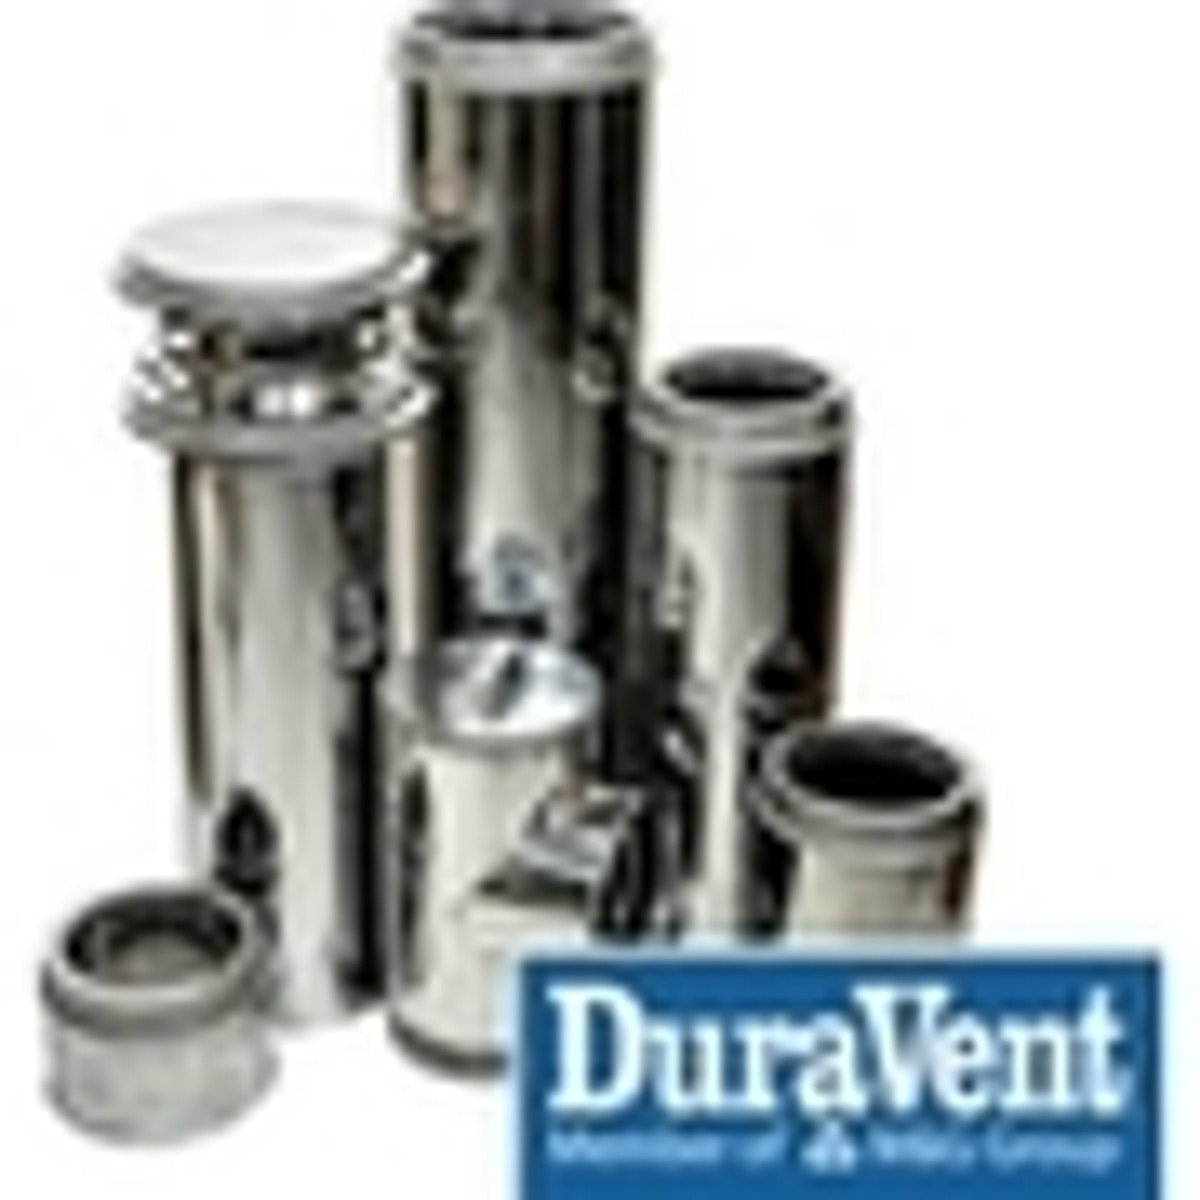 5'' DuraTech Chimney Pipe